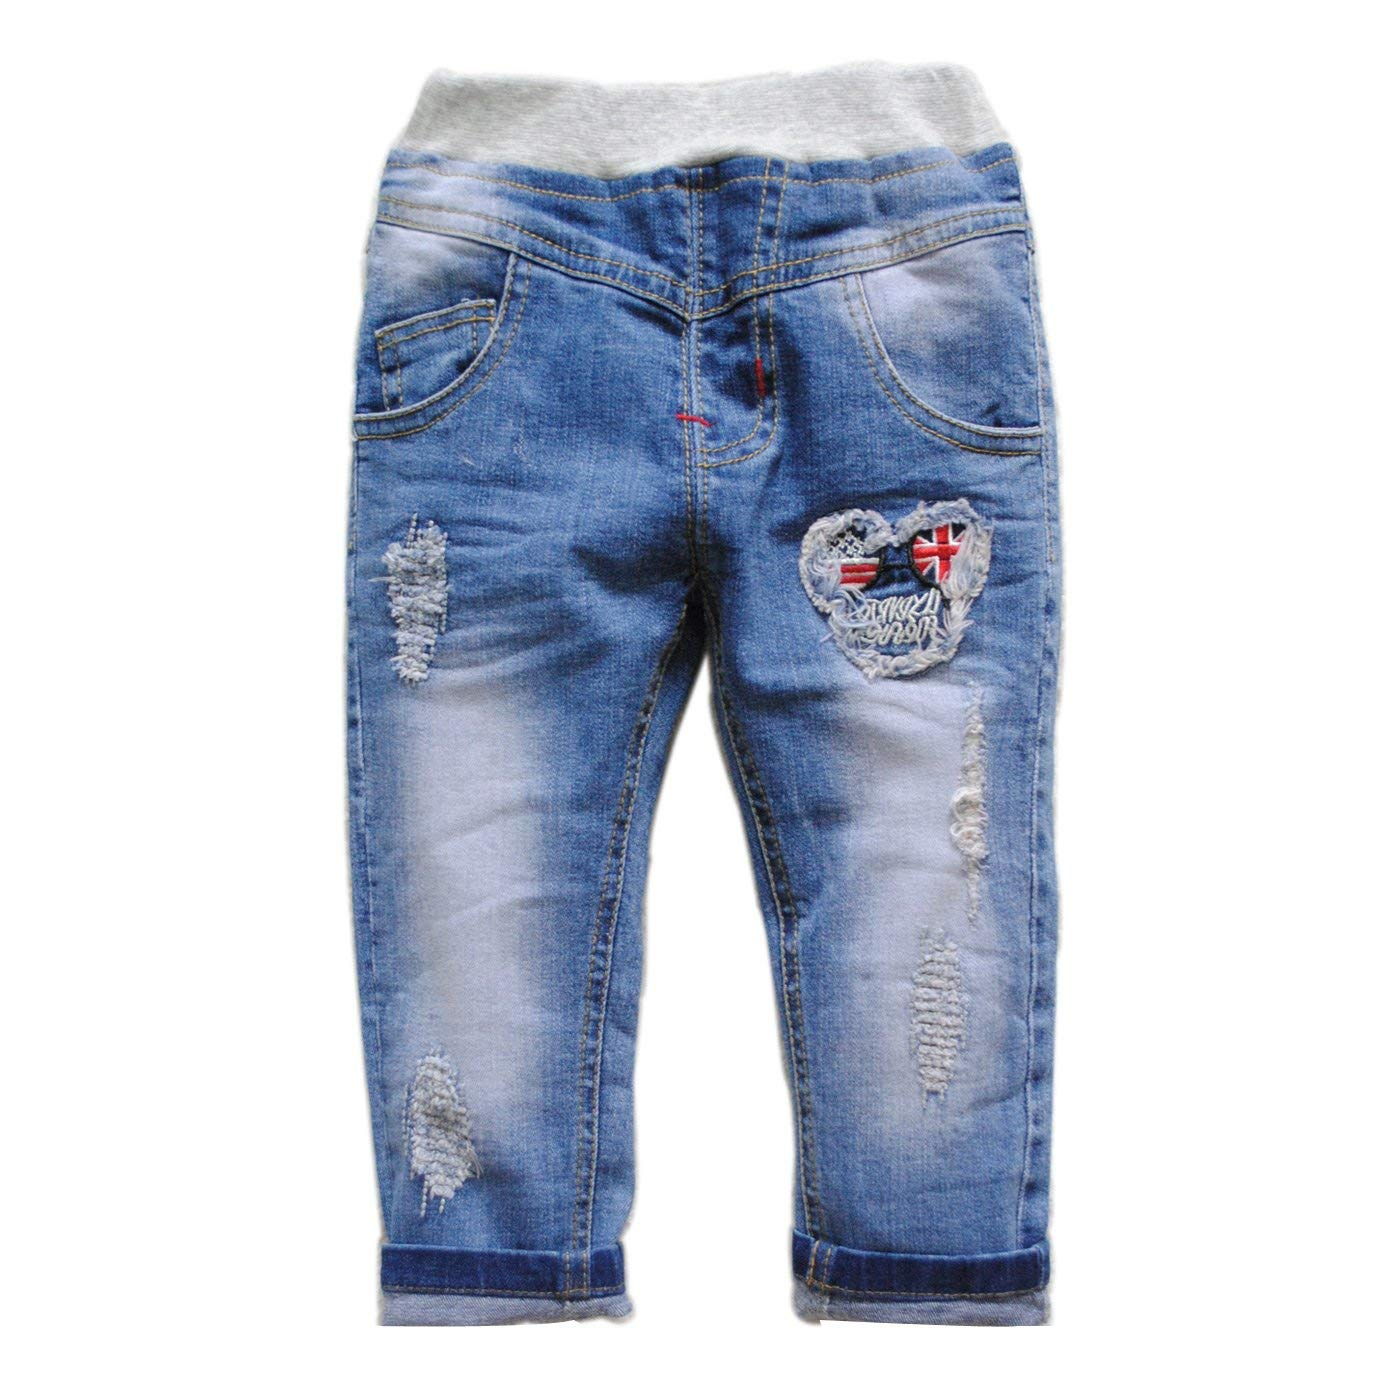 38ef8e9dc Get Quotations · 3937 Kids baby jeans baby boys trousers casual pants Blue  soft denim GIRL (24M)